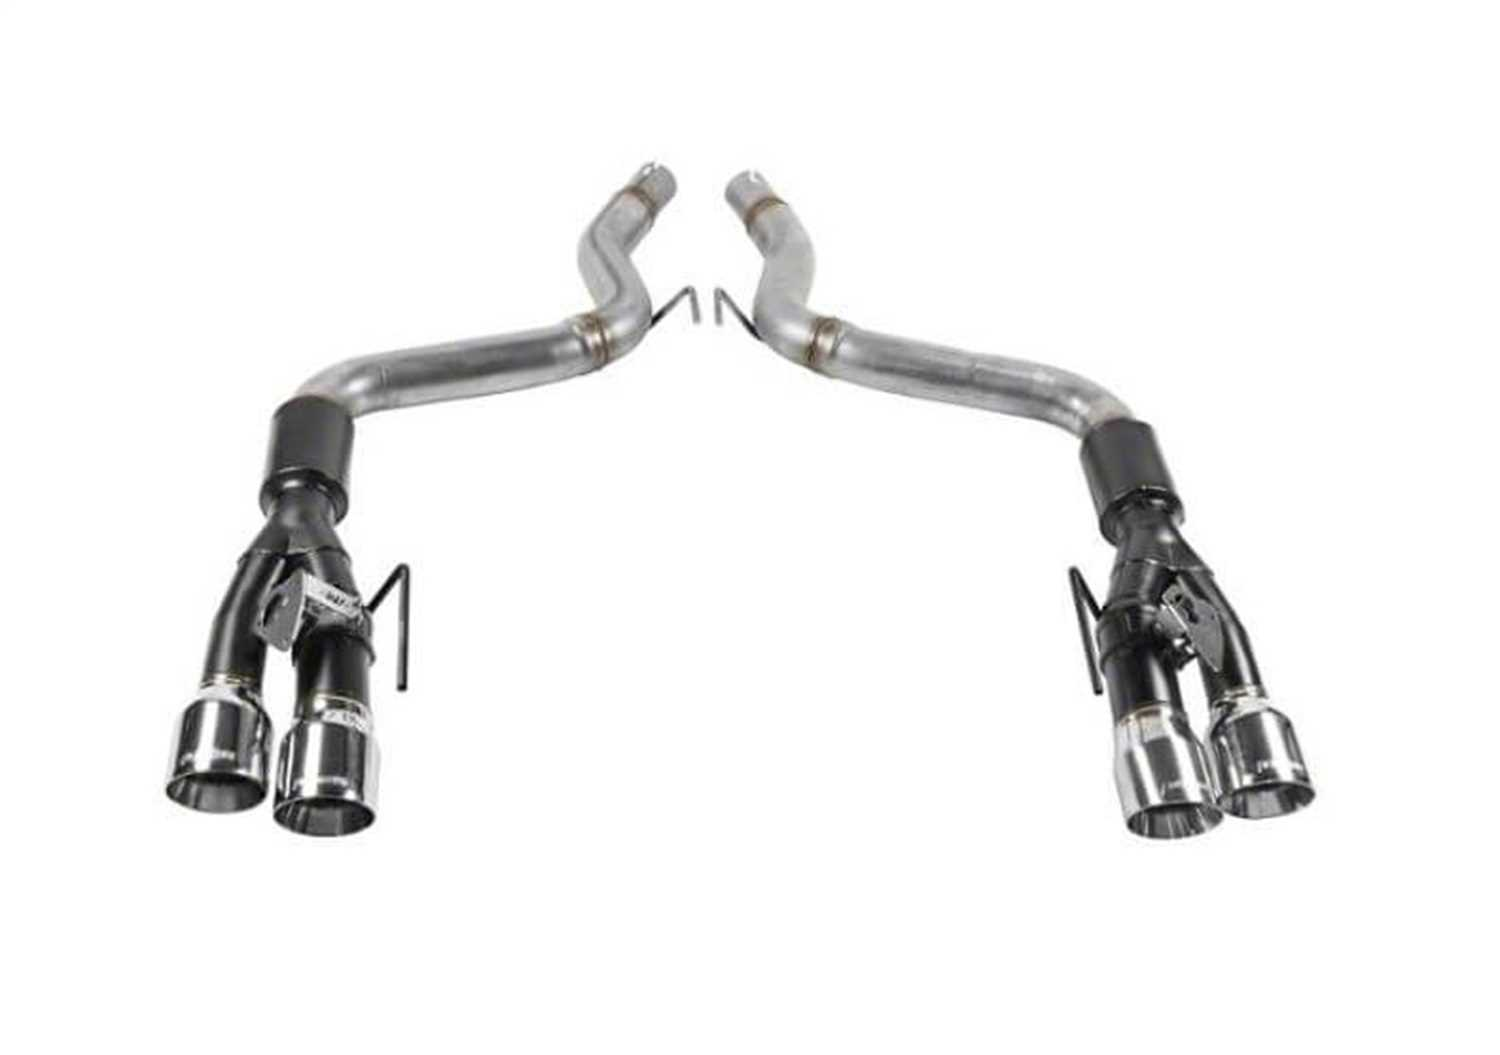 817825 Flowmaster Outlaw Series™ Axle Back Exhaust System